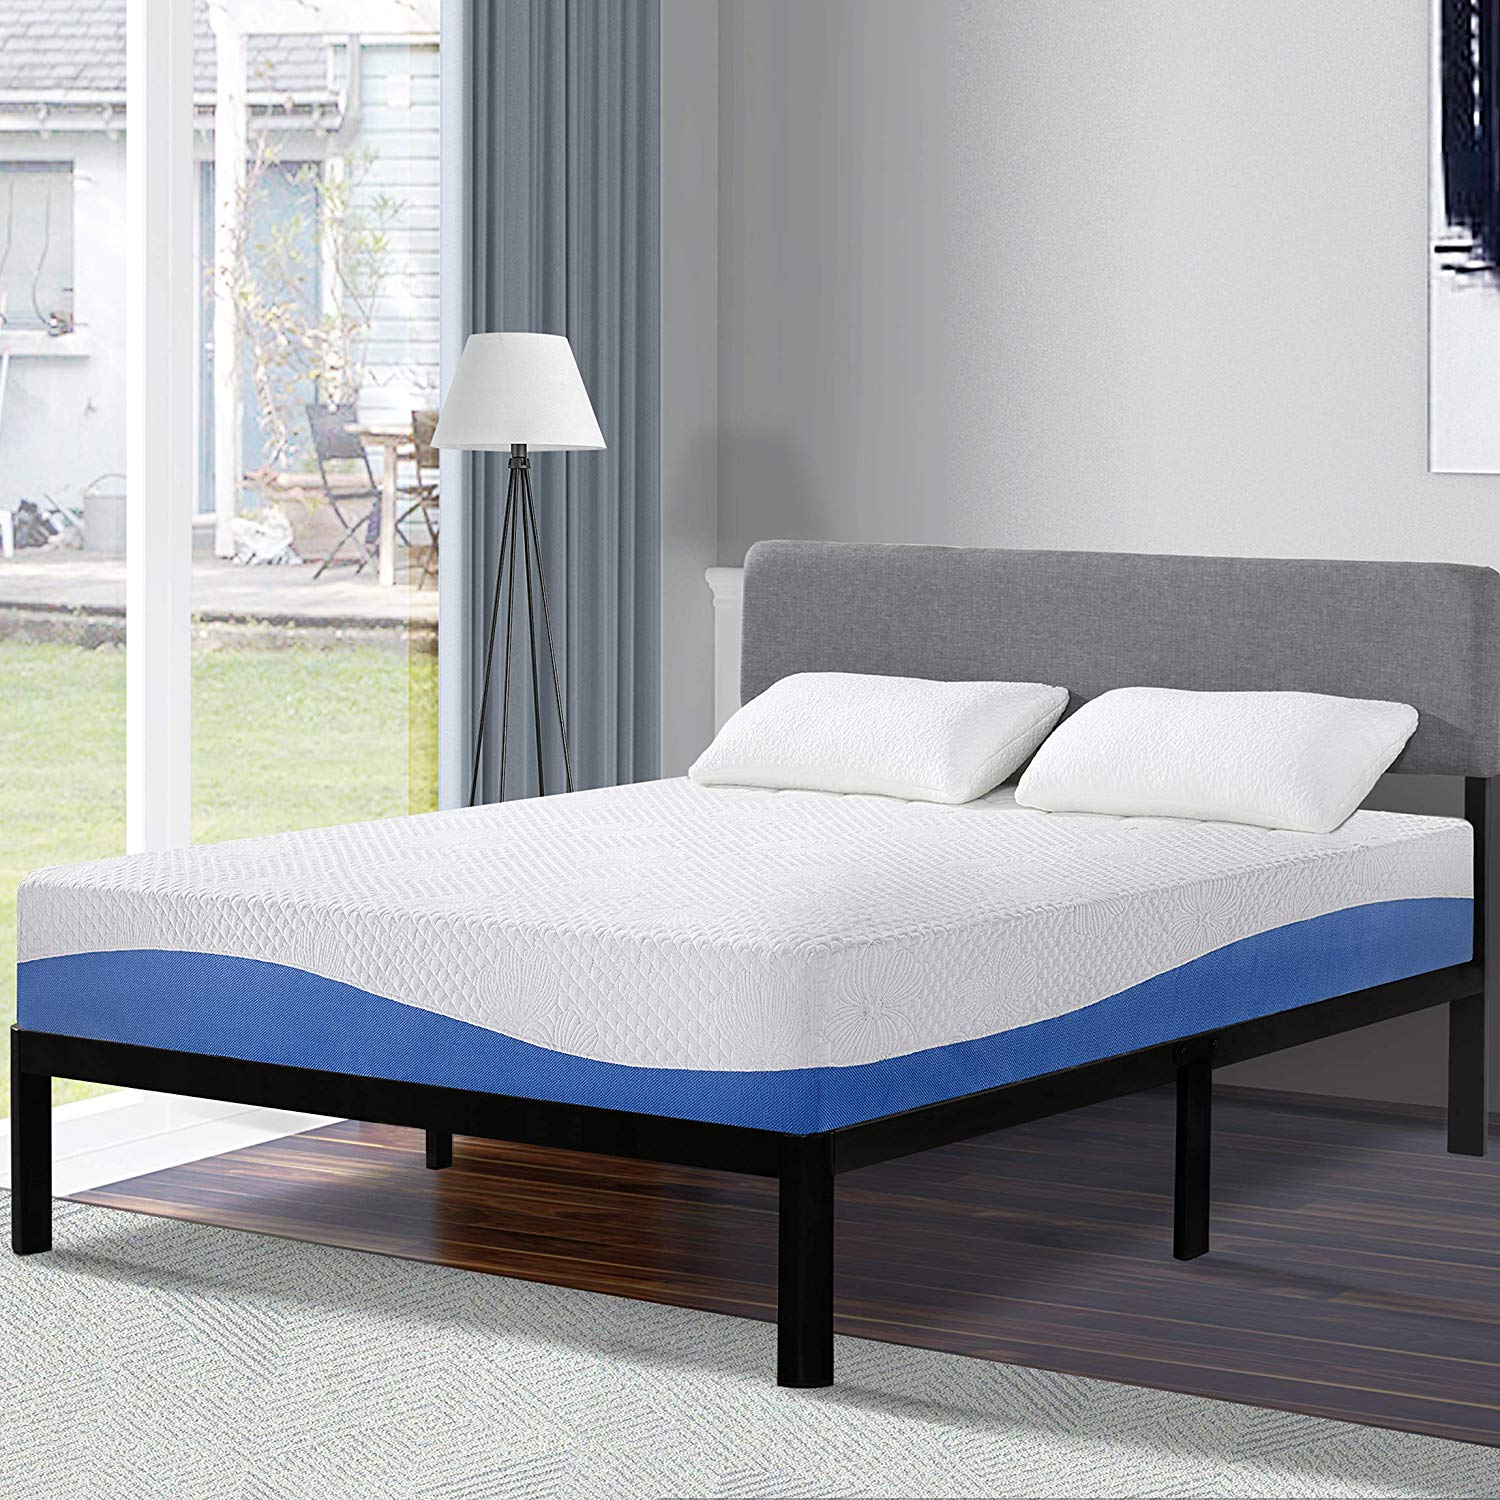 Olee Sleep Cool I Gel Infused Mattress Blue [10 inches]